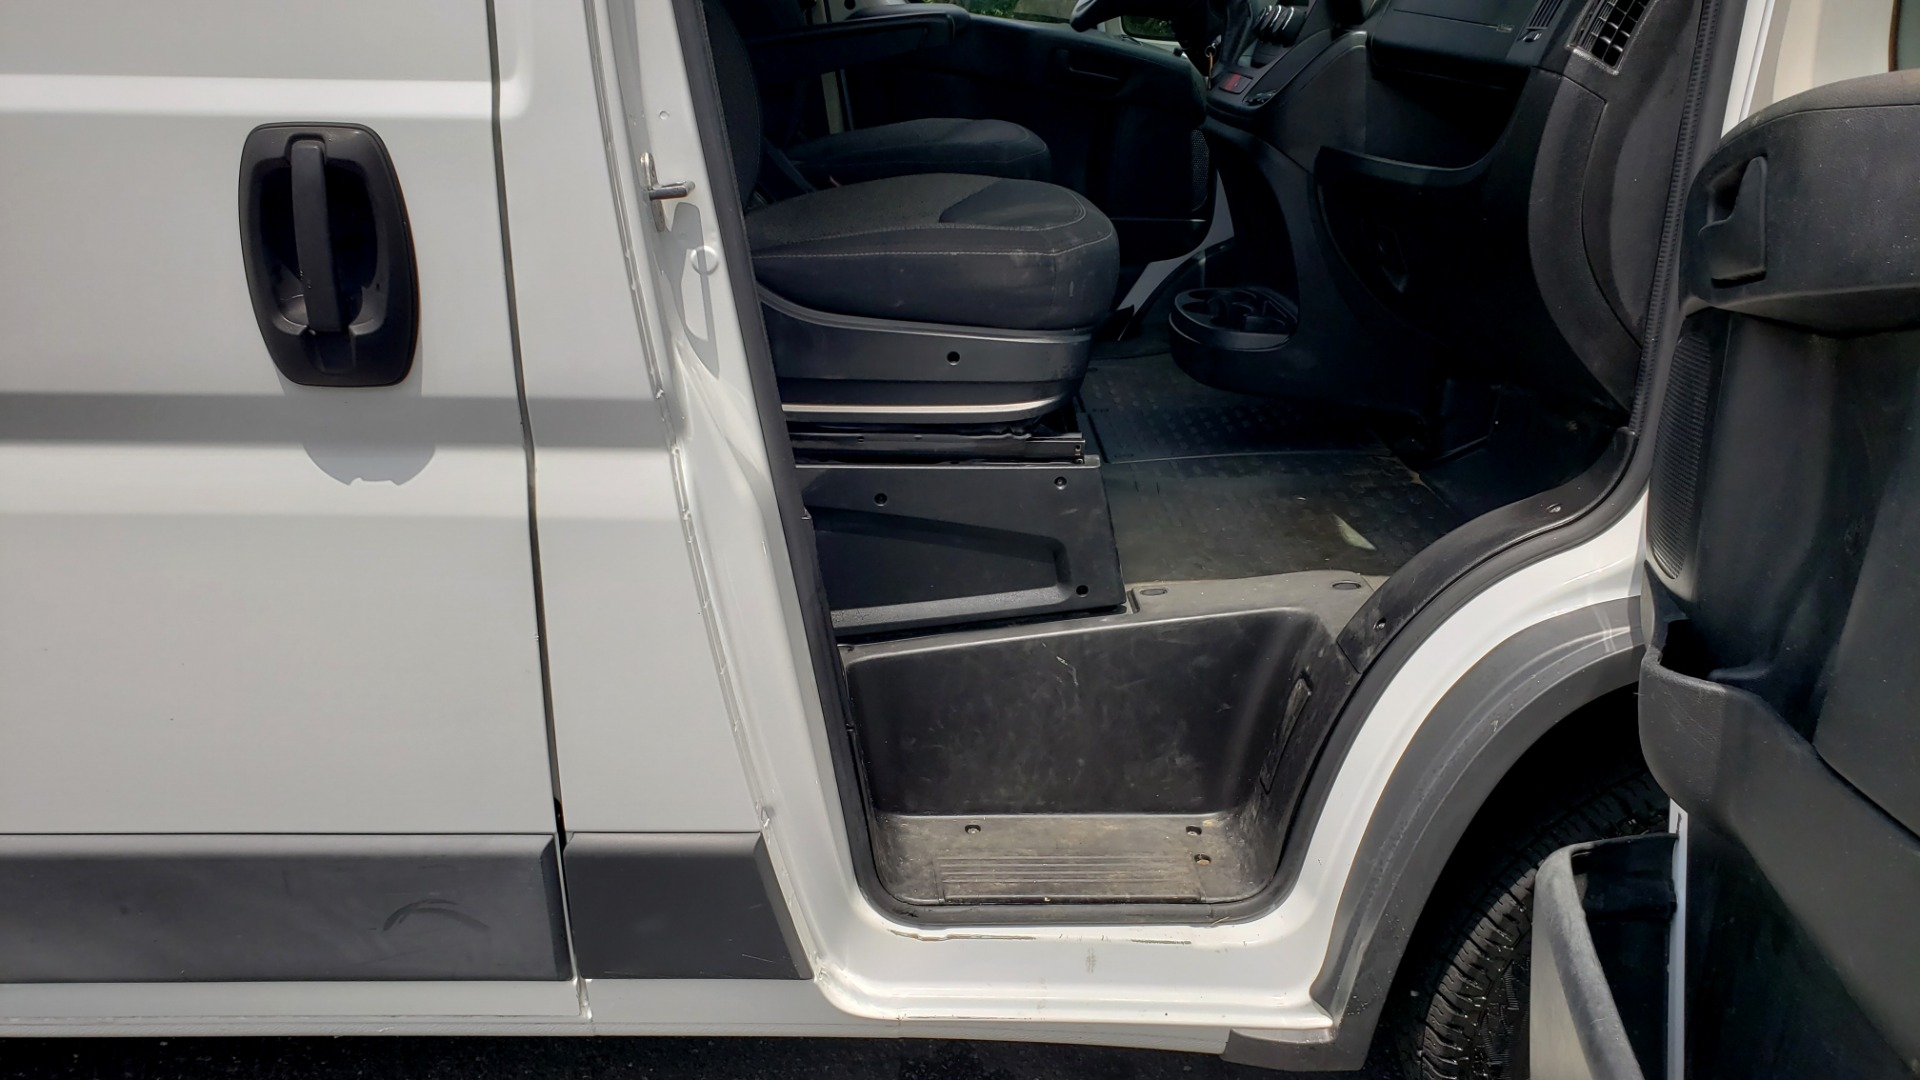 Used 2016 Ram PROMASTER CARGO VAN 136 WB / 3.6L V6 / AUTO / ROOF-RACK / REARVIEW / SEATS 5 for sale $15,995 at Formula Imports in Charlotte NC 28227 54